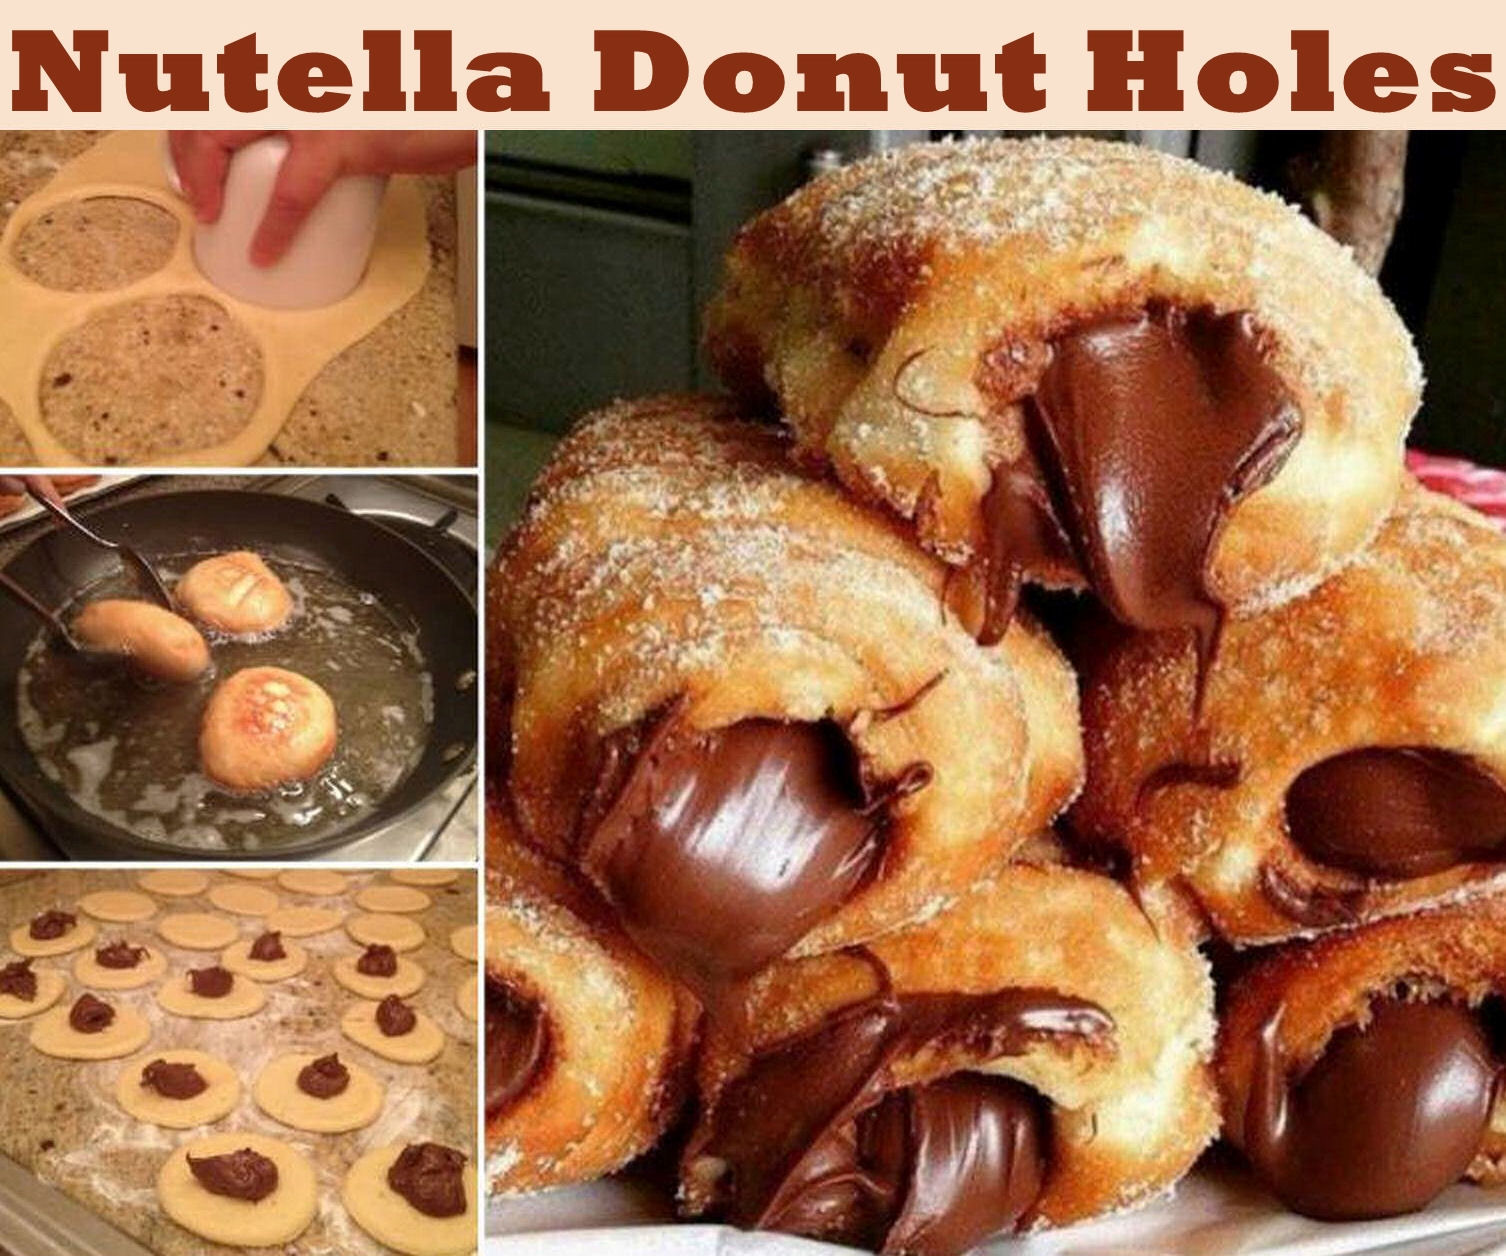 Nutella Donut Holes Food Tutorial Pictures Photos And